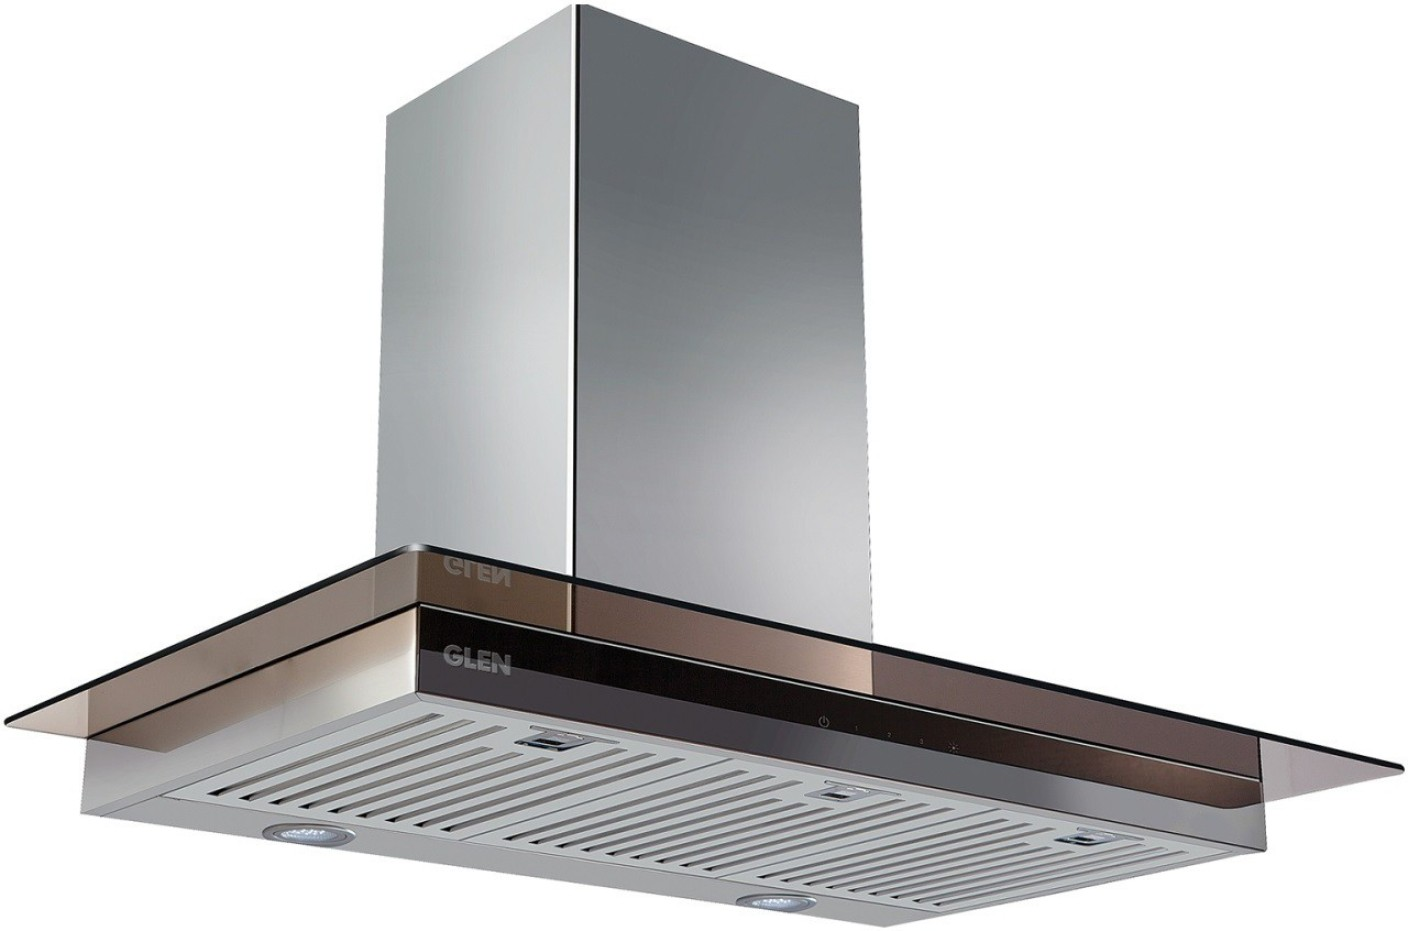 Glen Kitchen Chimney Gl 6062 Sx Ts 60cm 750m3 Touch